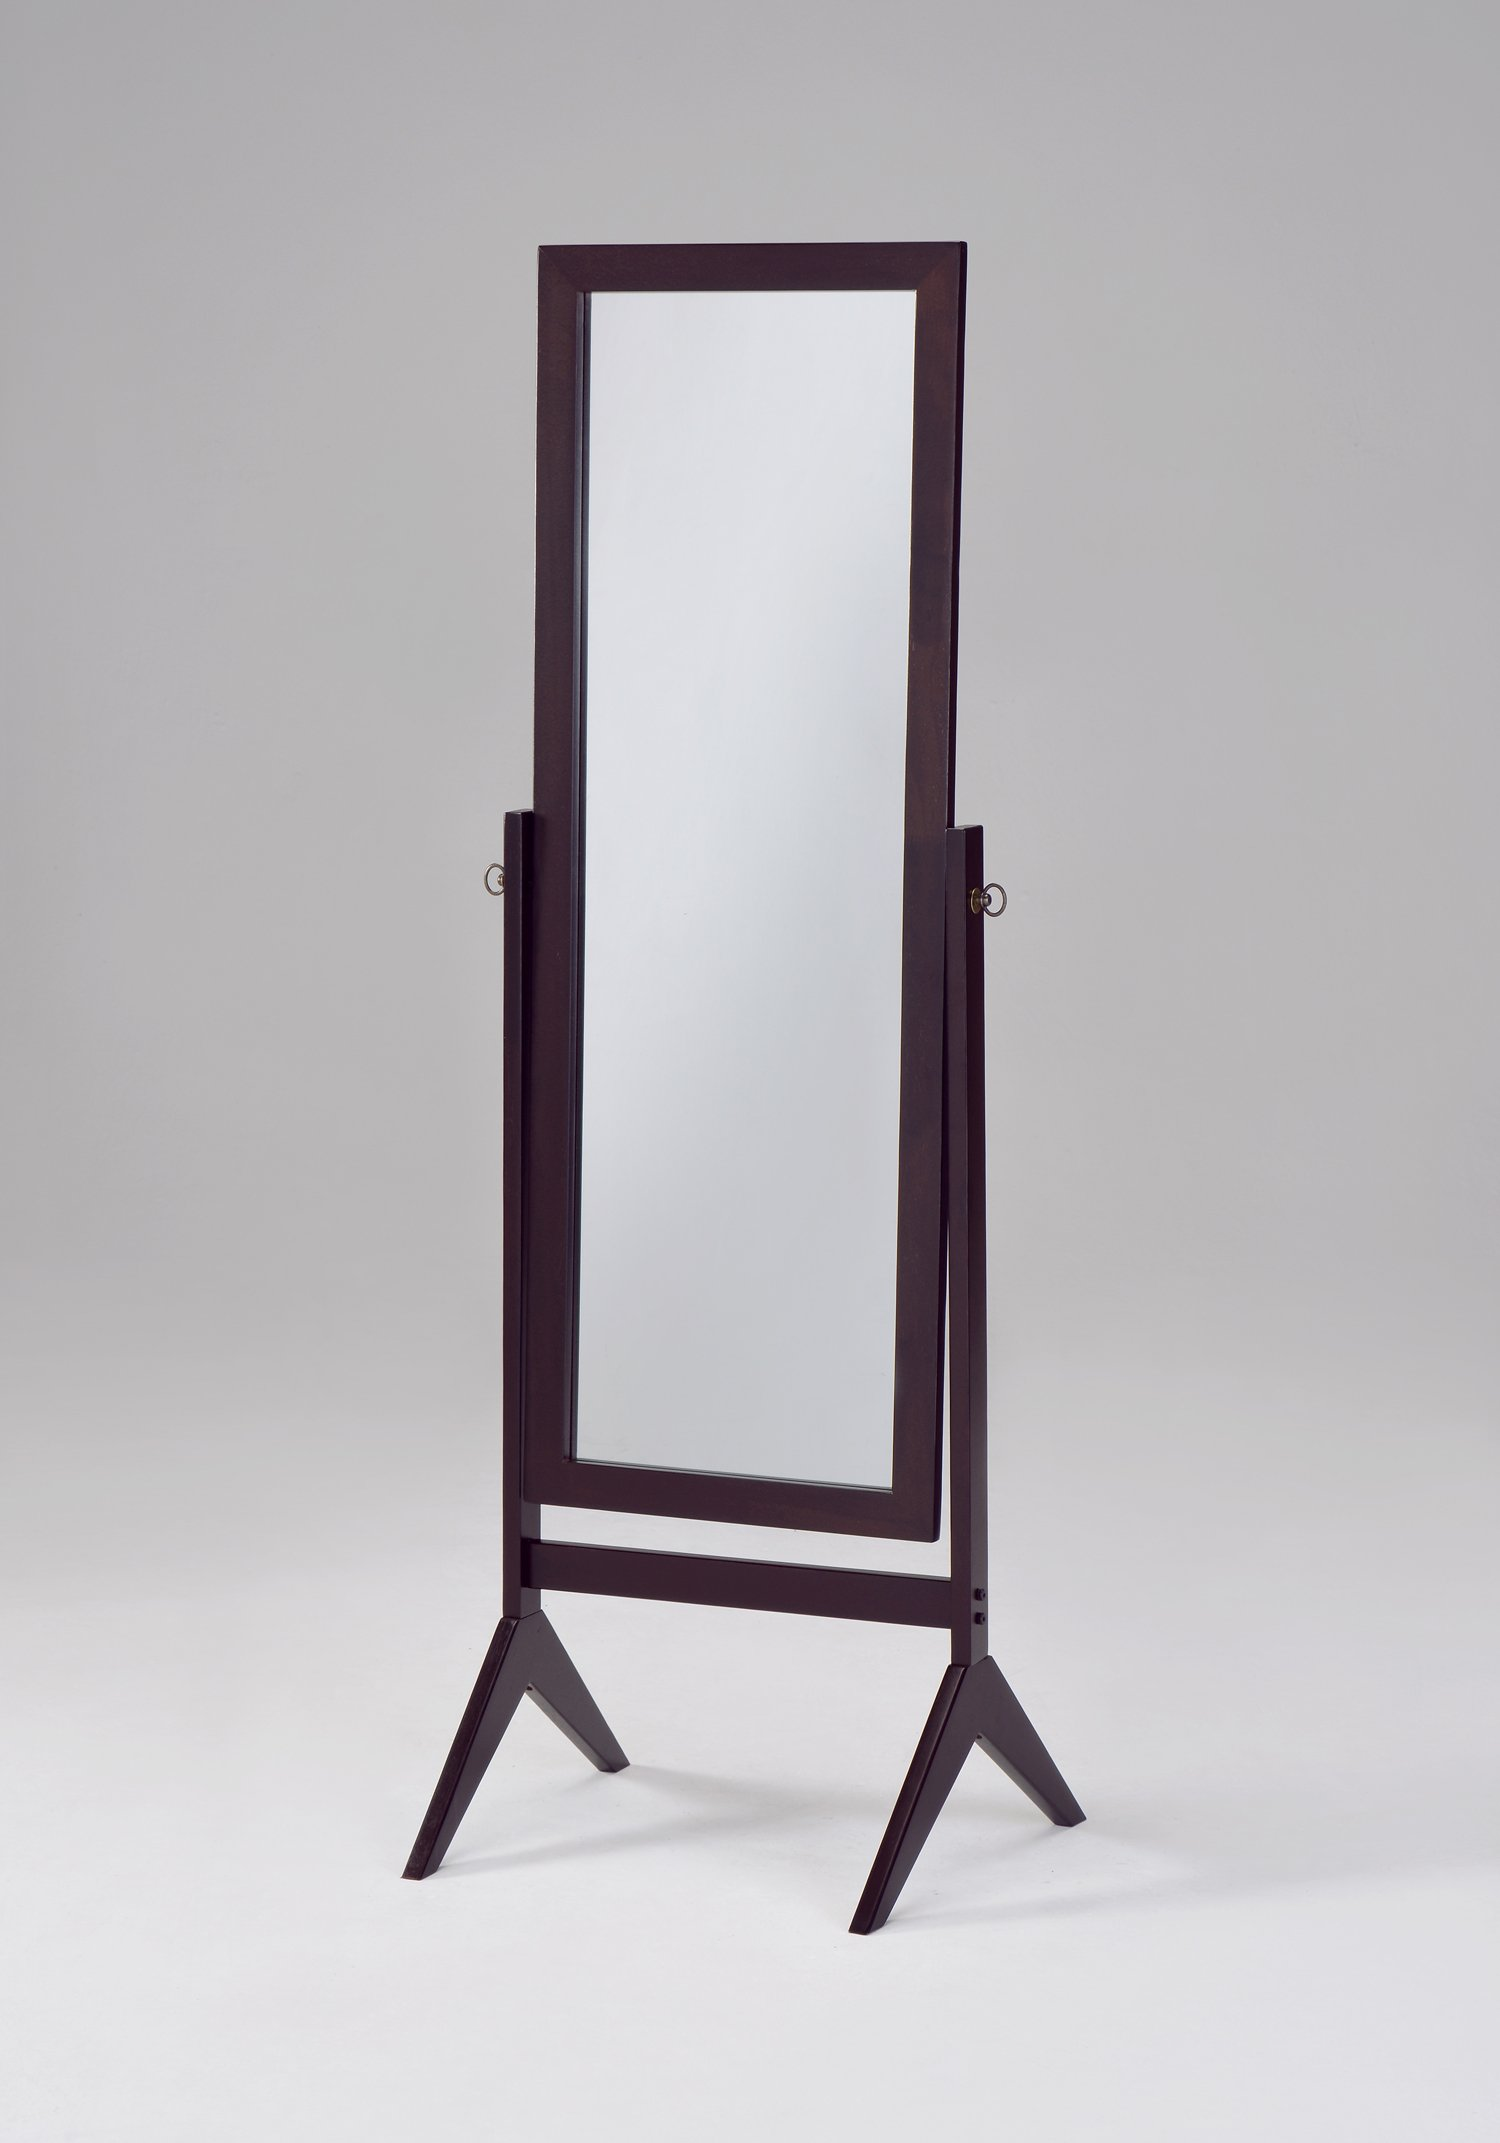 Espresso Finish Wooden Cheval Bedroom Floor Mirror by eHomeProducts